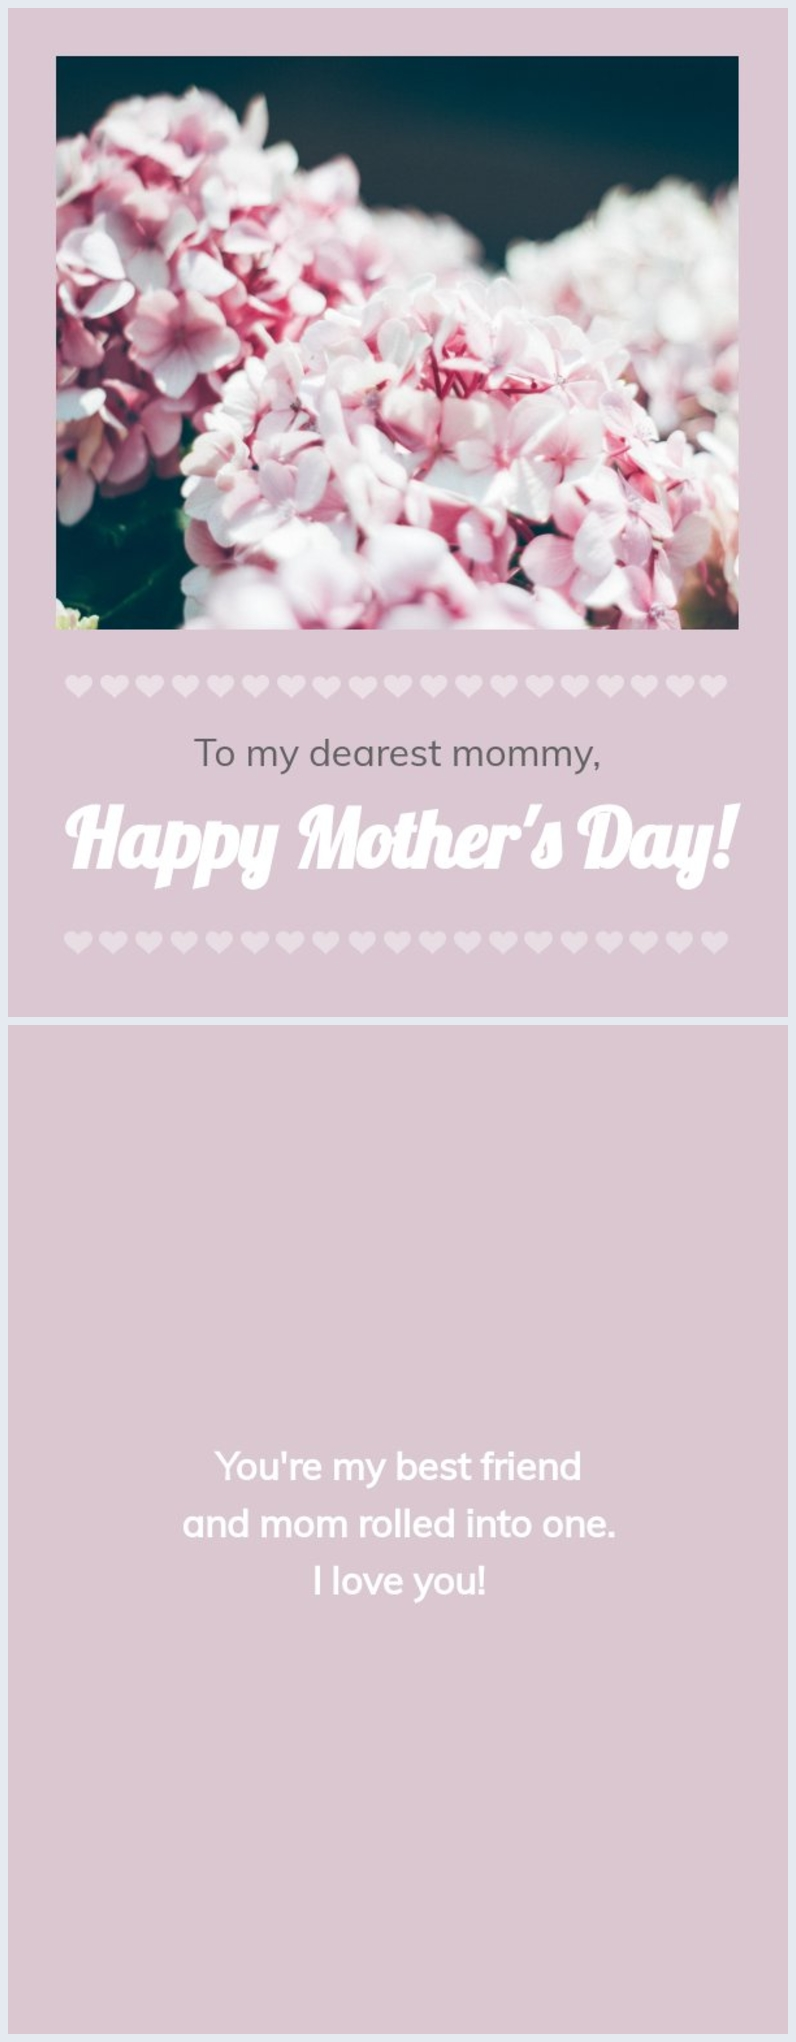 Free editable Happy Mother's Day card design